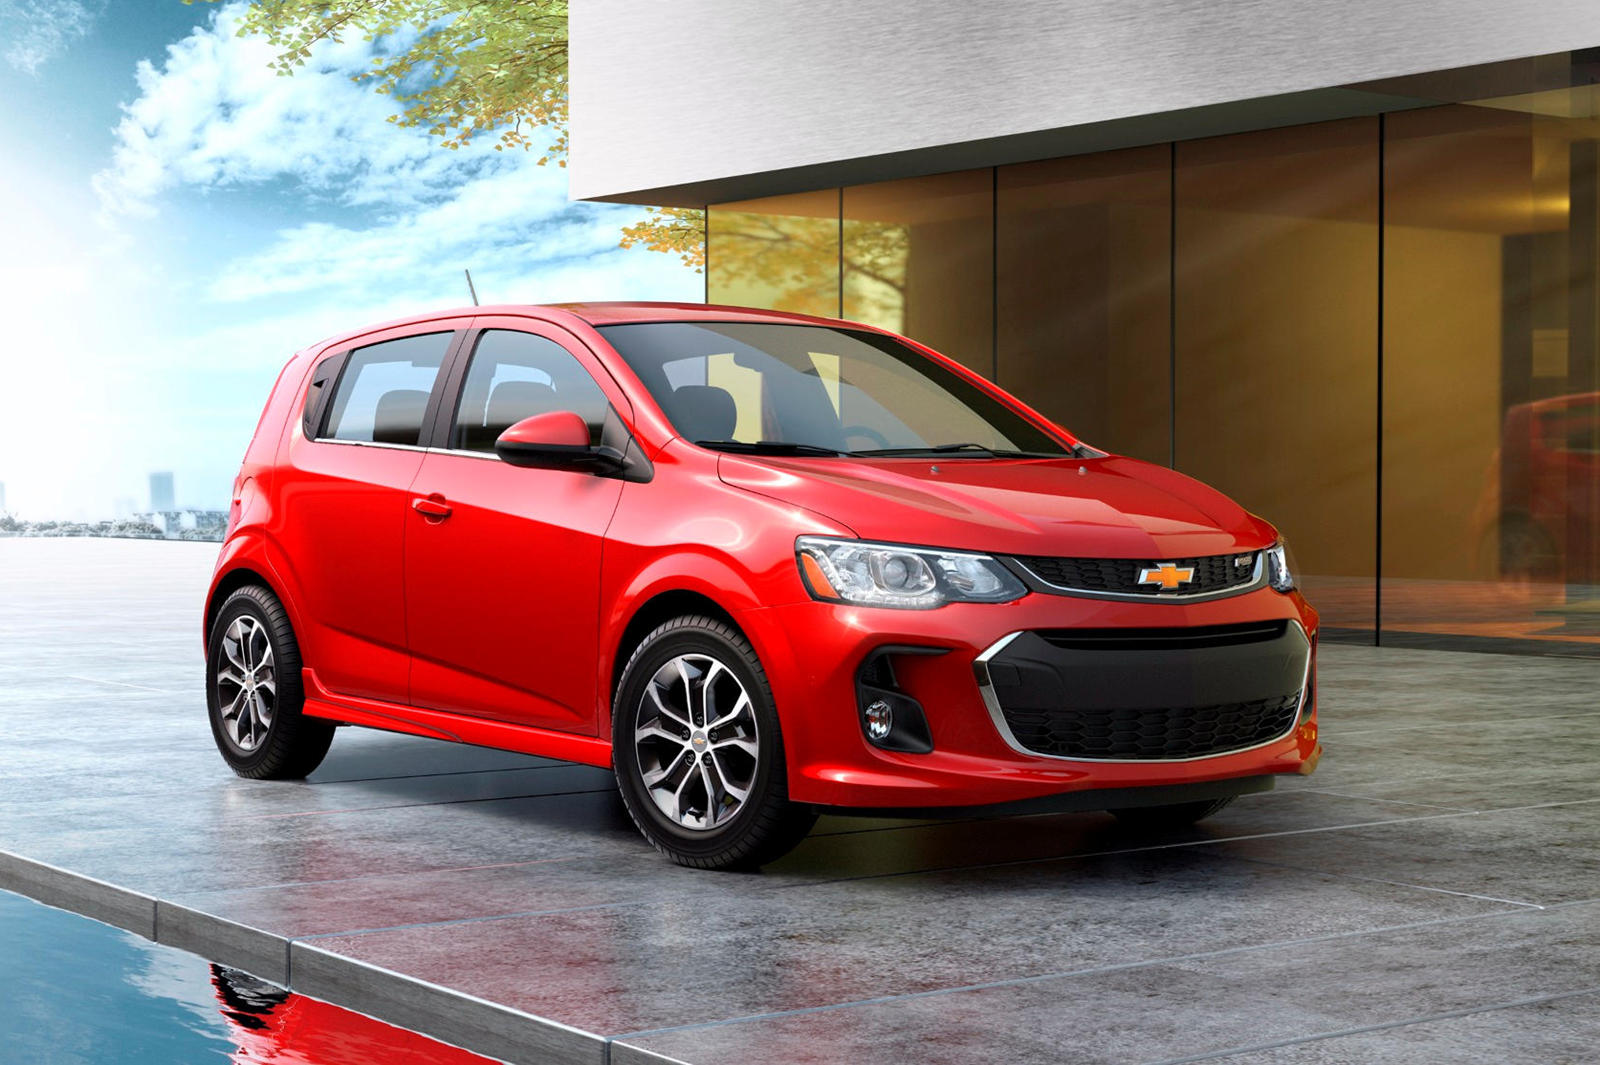 2020 Chevy Sonic Exterior and Interior